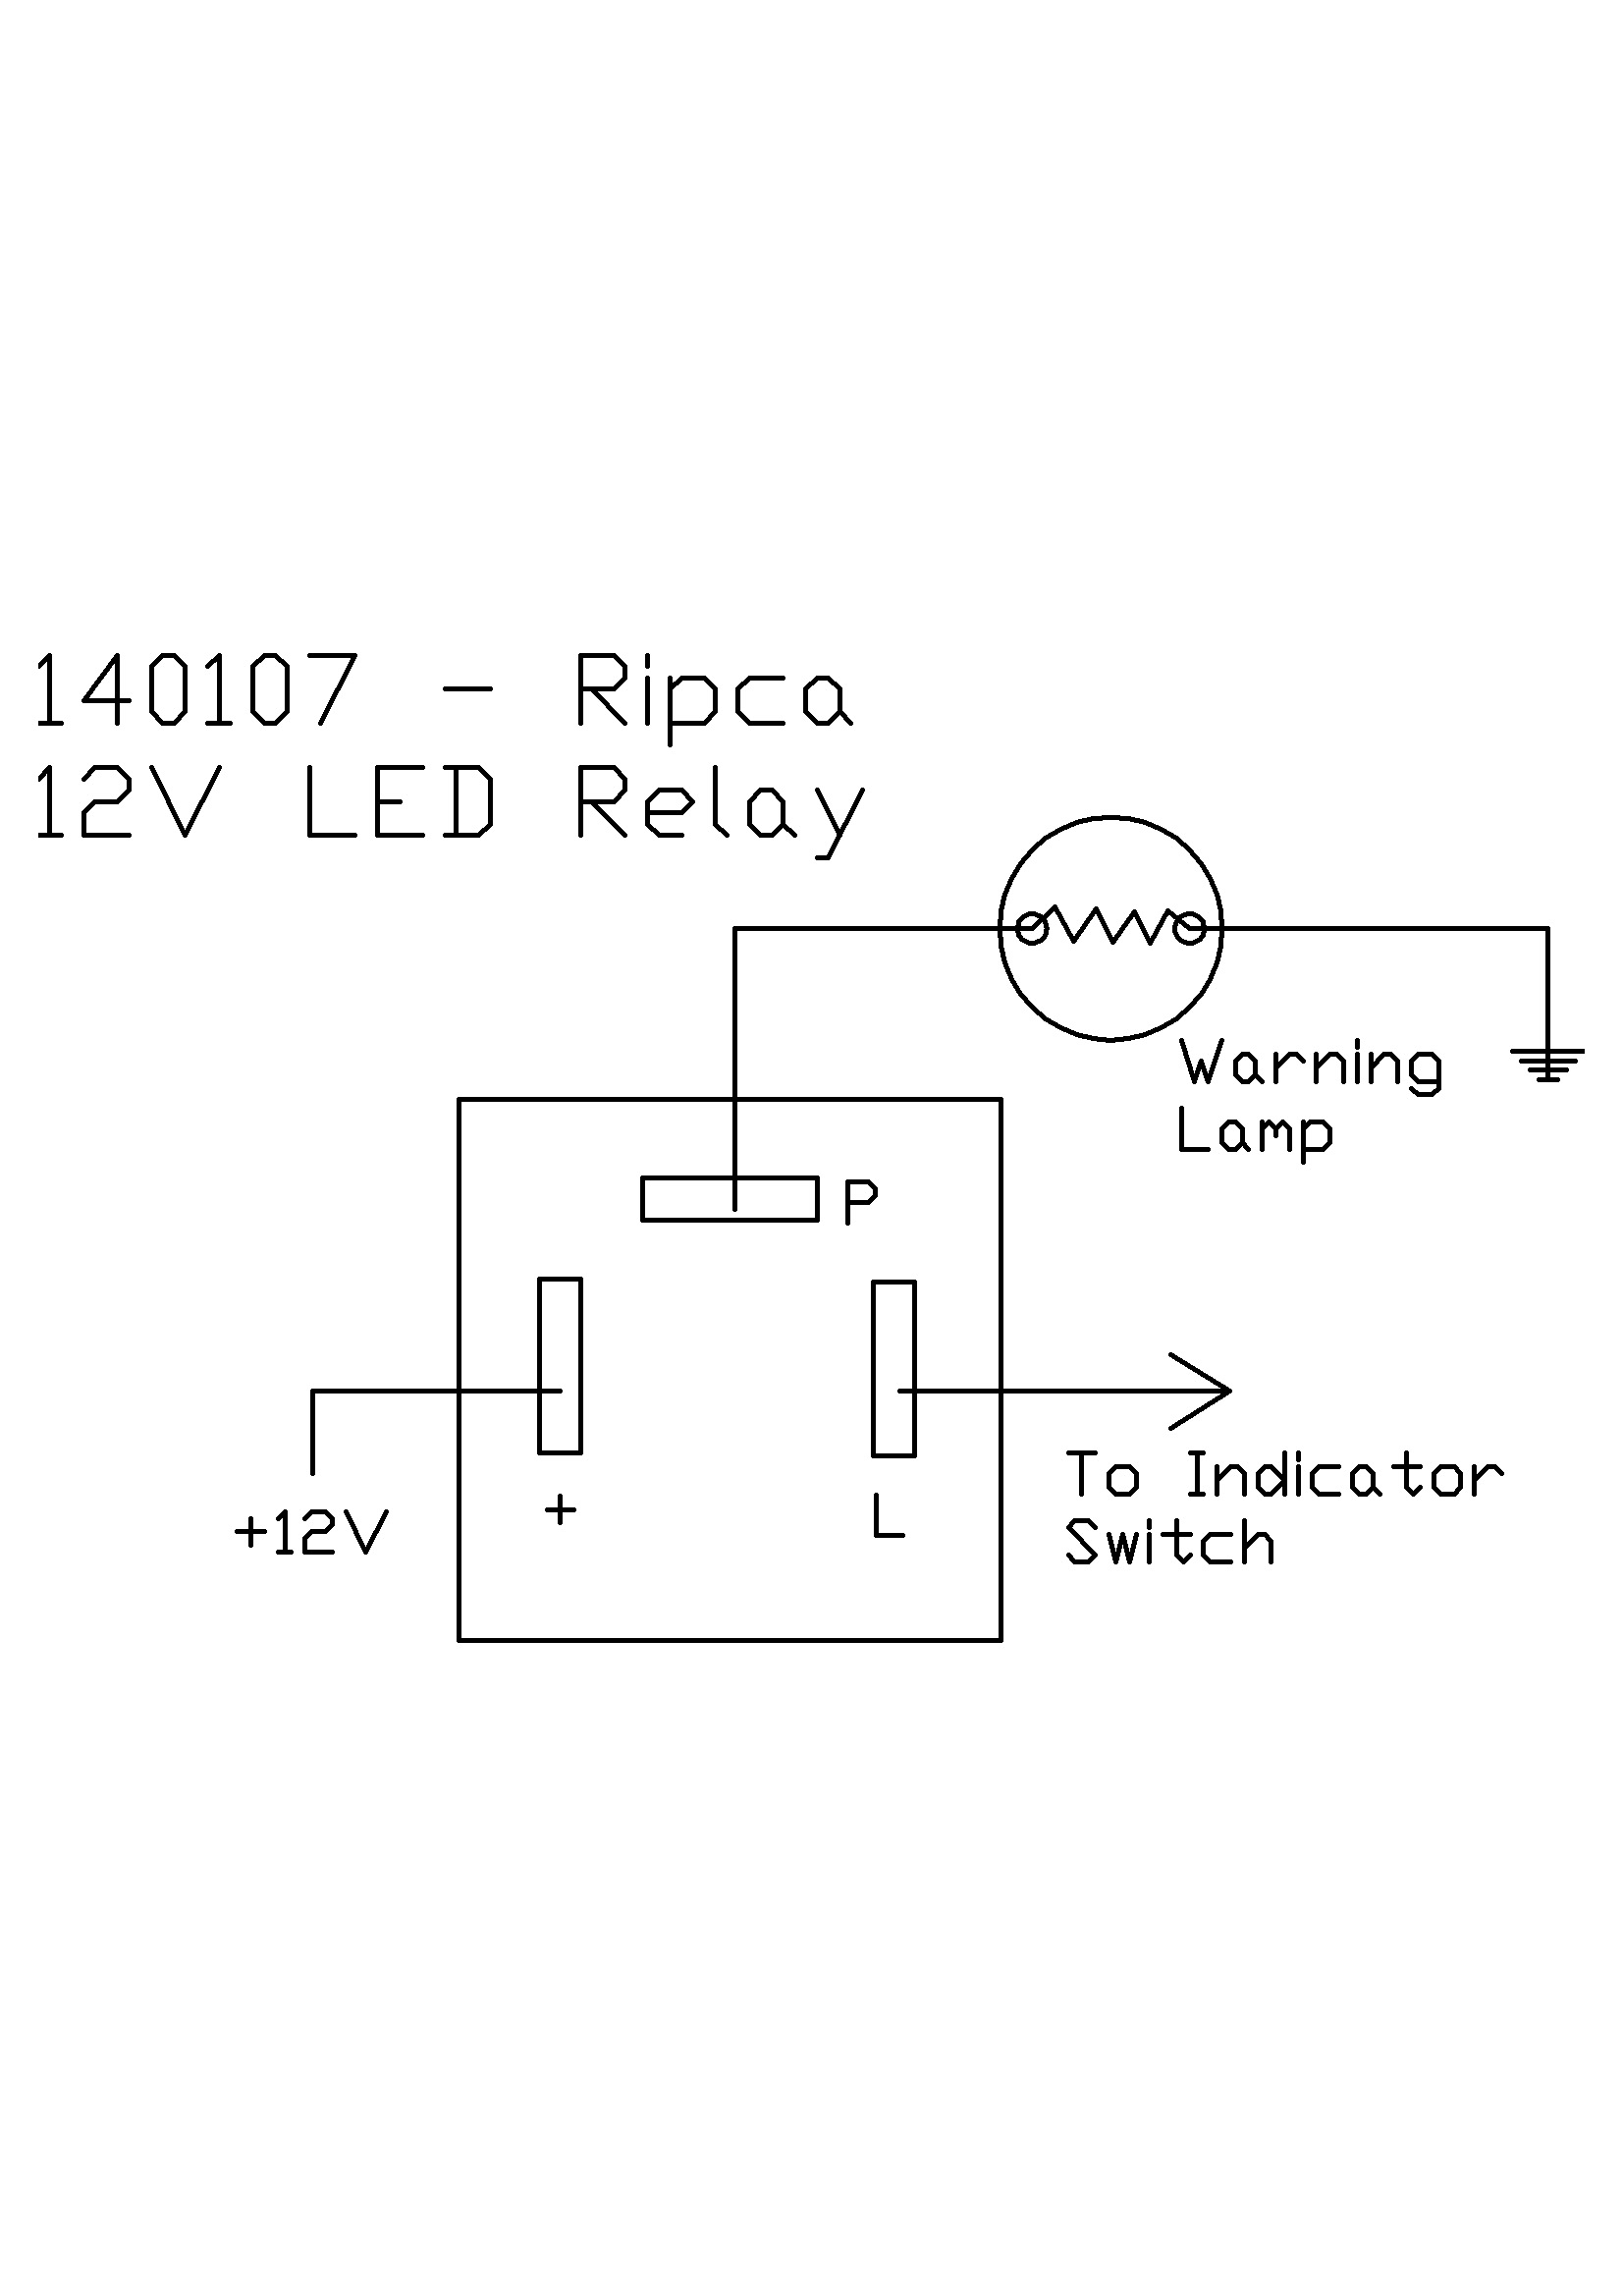 140107 ripca 12 volt led flasher unit flasher unit wiring diagram at crackthecode.co